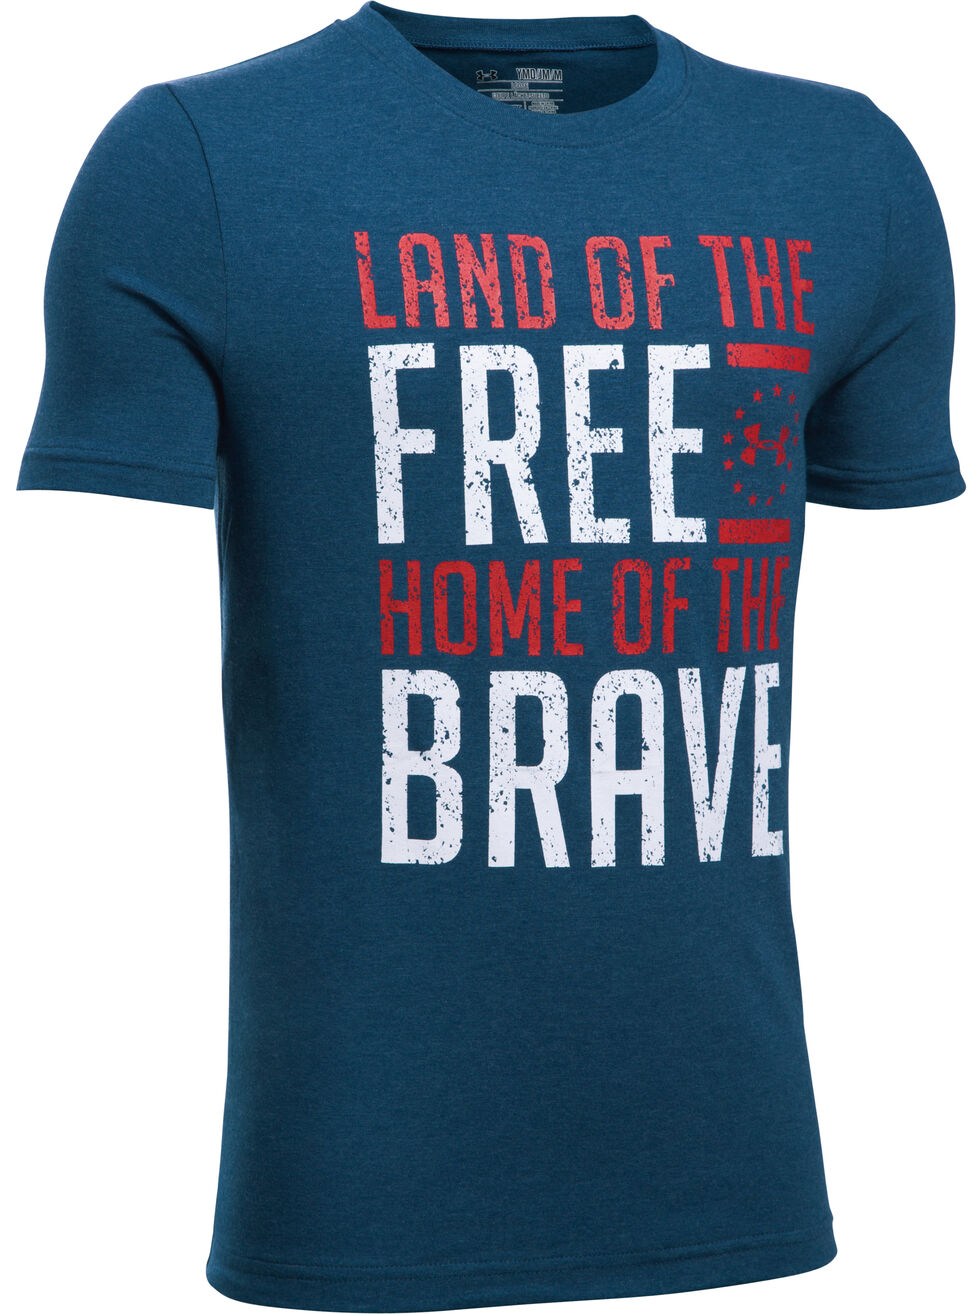 Under Armour Freedom Boys' Navy Land of the Free Tactical Shirt, , hi-res